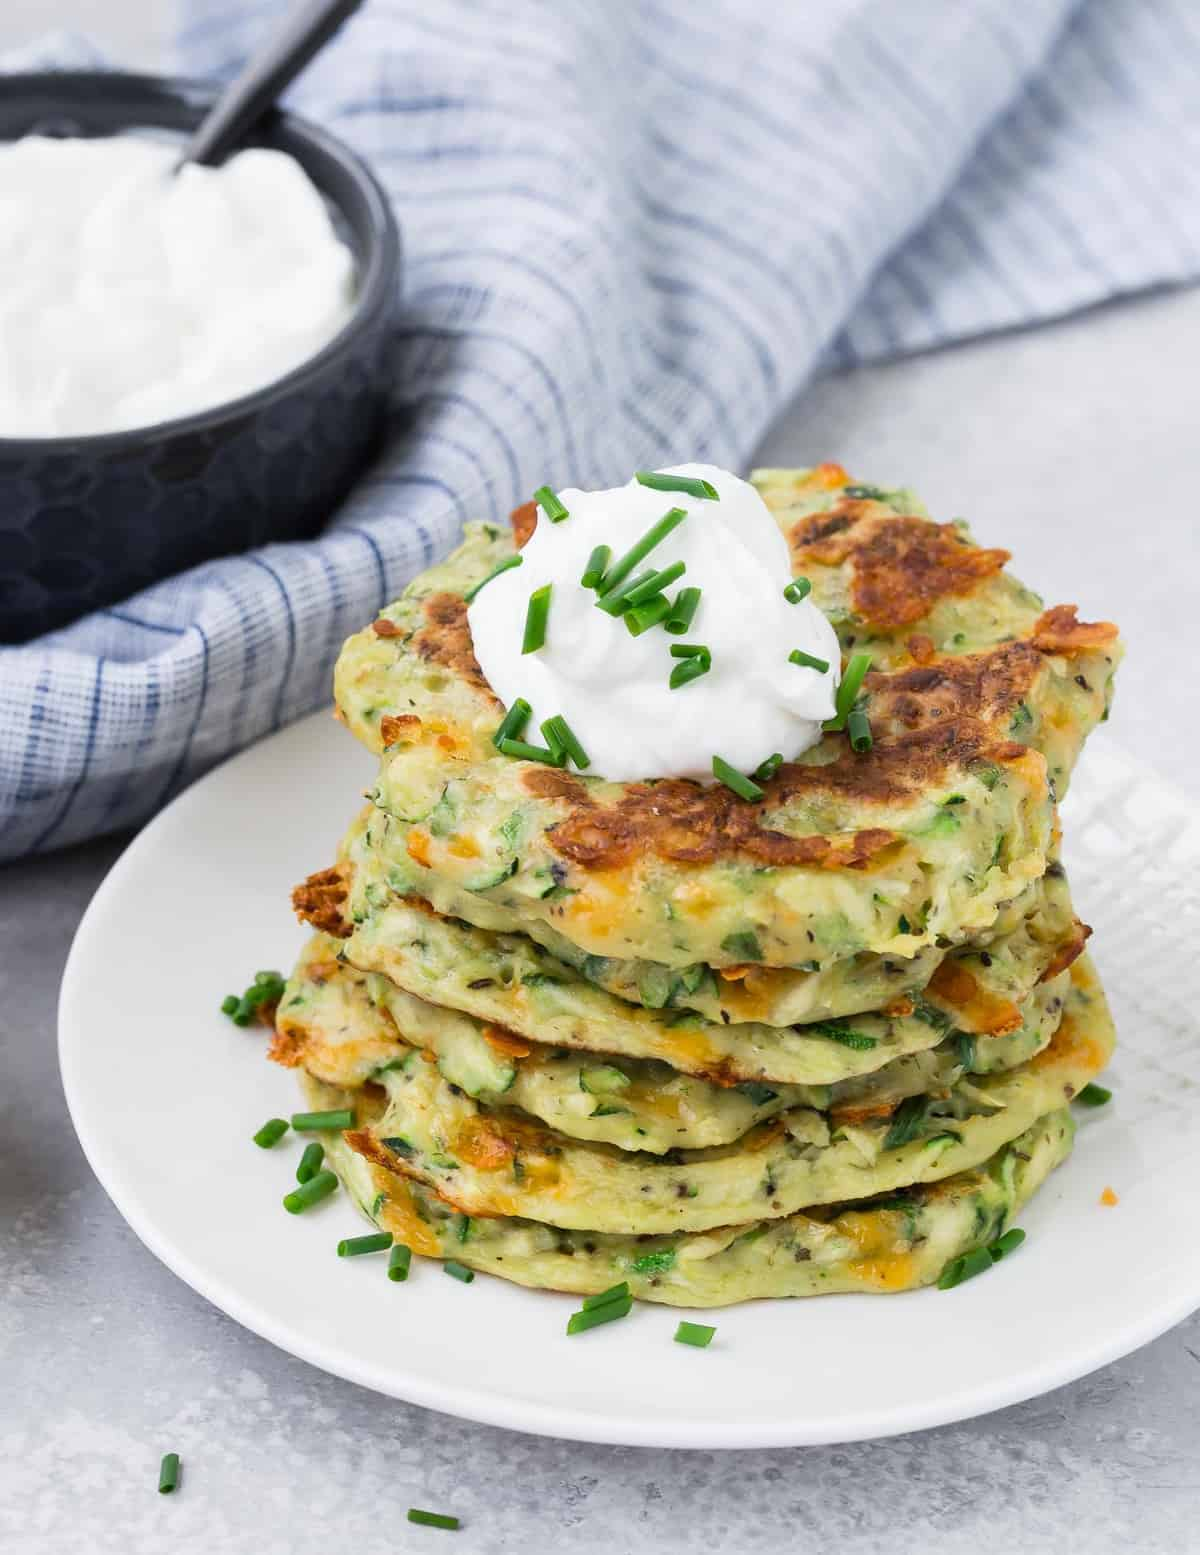 Fritters made with zucchini in a stack on a white plate.